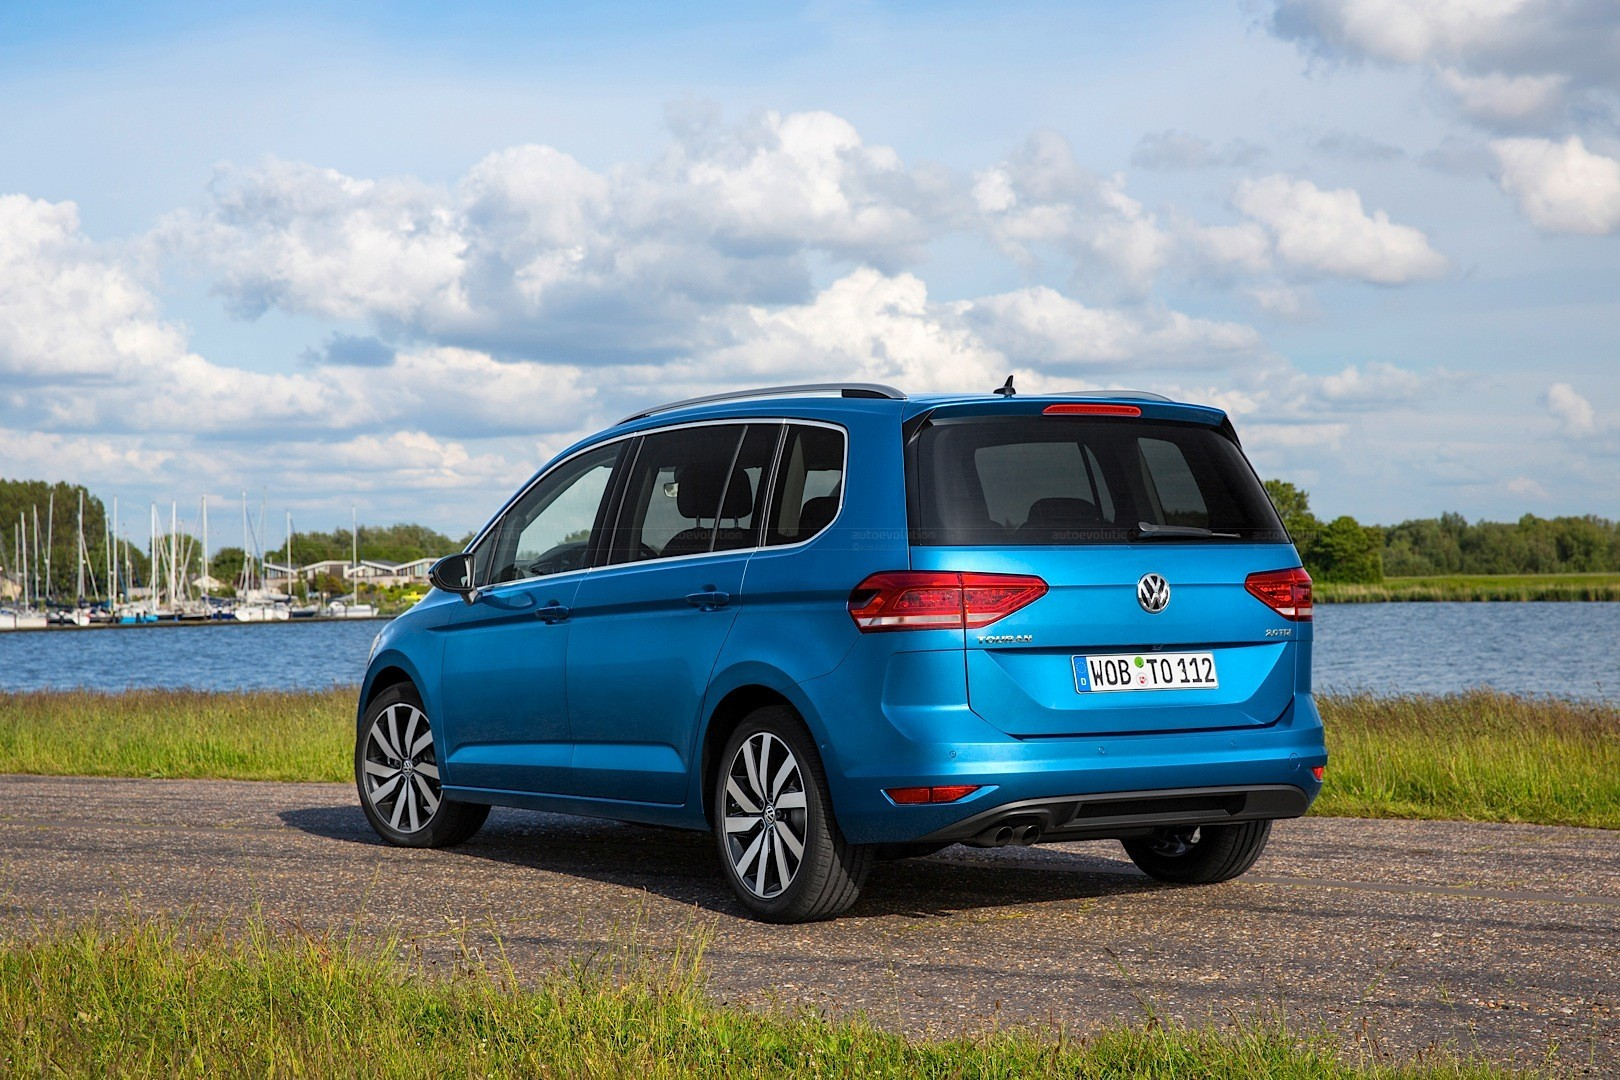 volkswagen touran specs photos 2015 2016 2017 2018 autoevolution. Black Bedroom Furniture Sets. Home Design Ideas